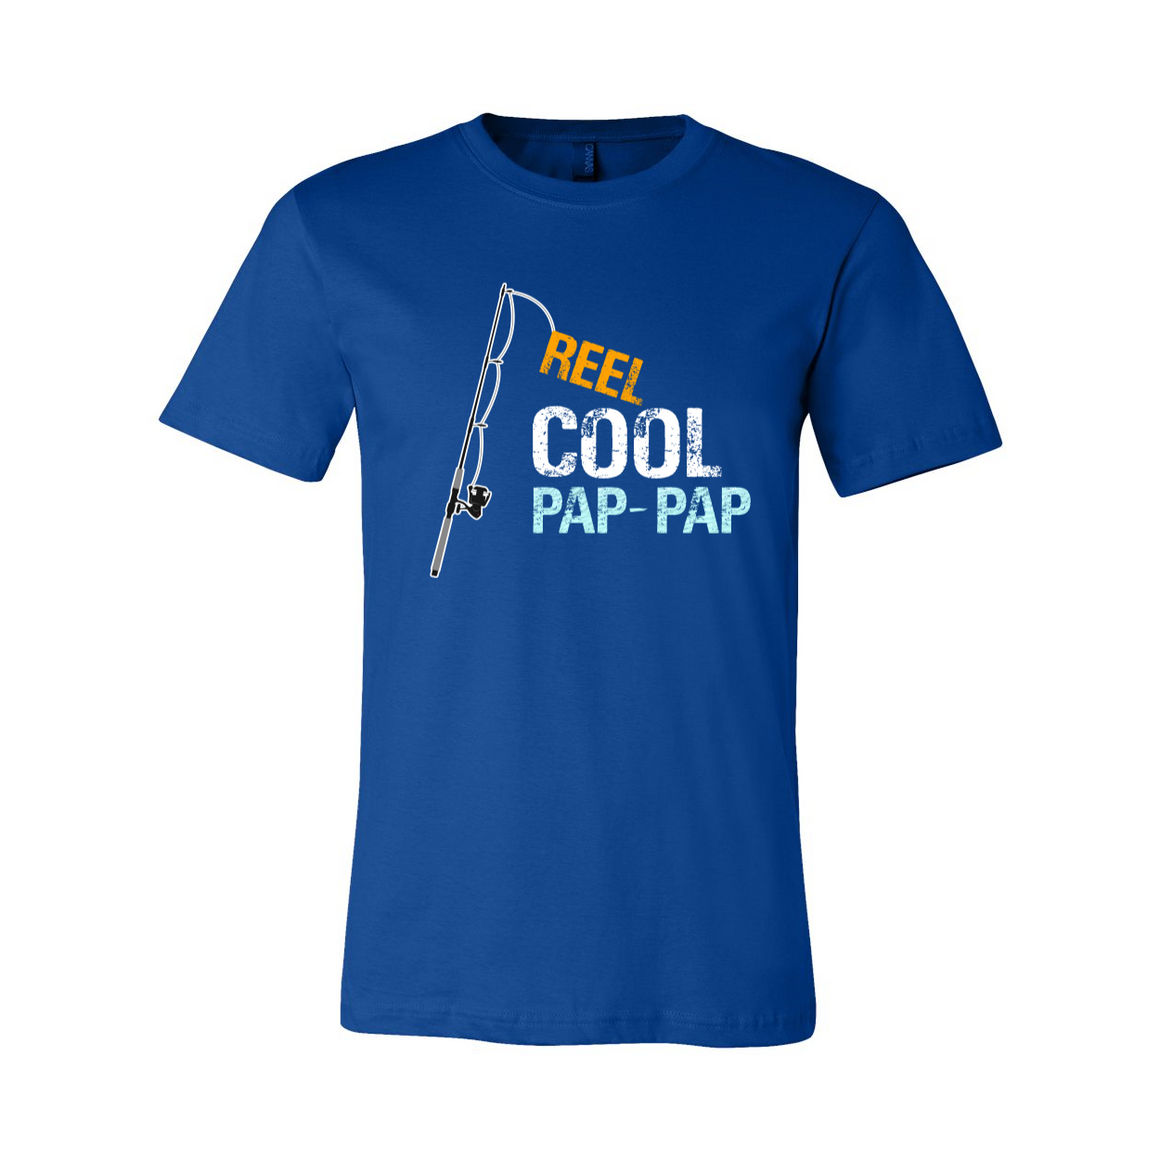 Reel Cool Pap-Pap Grandpa Grandfather Tshirt